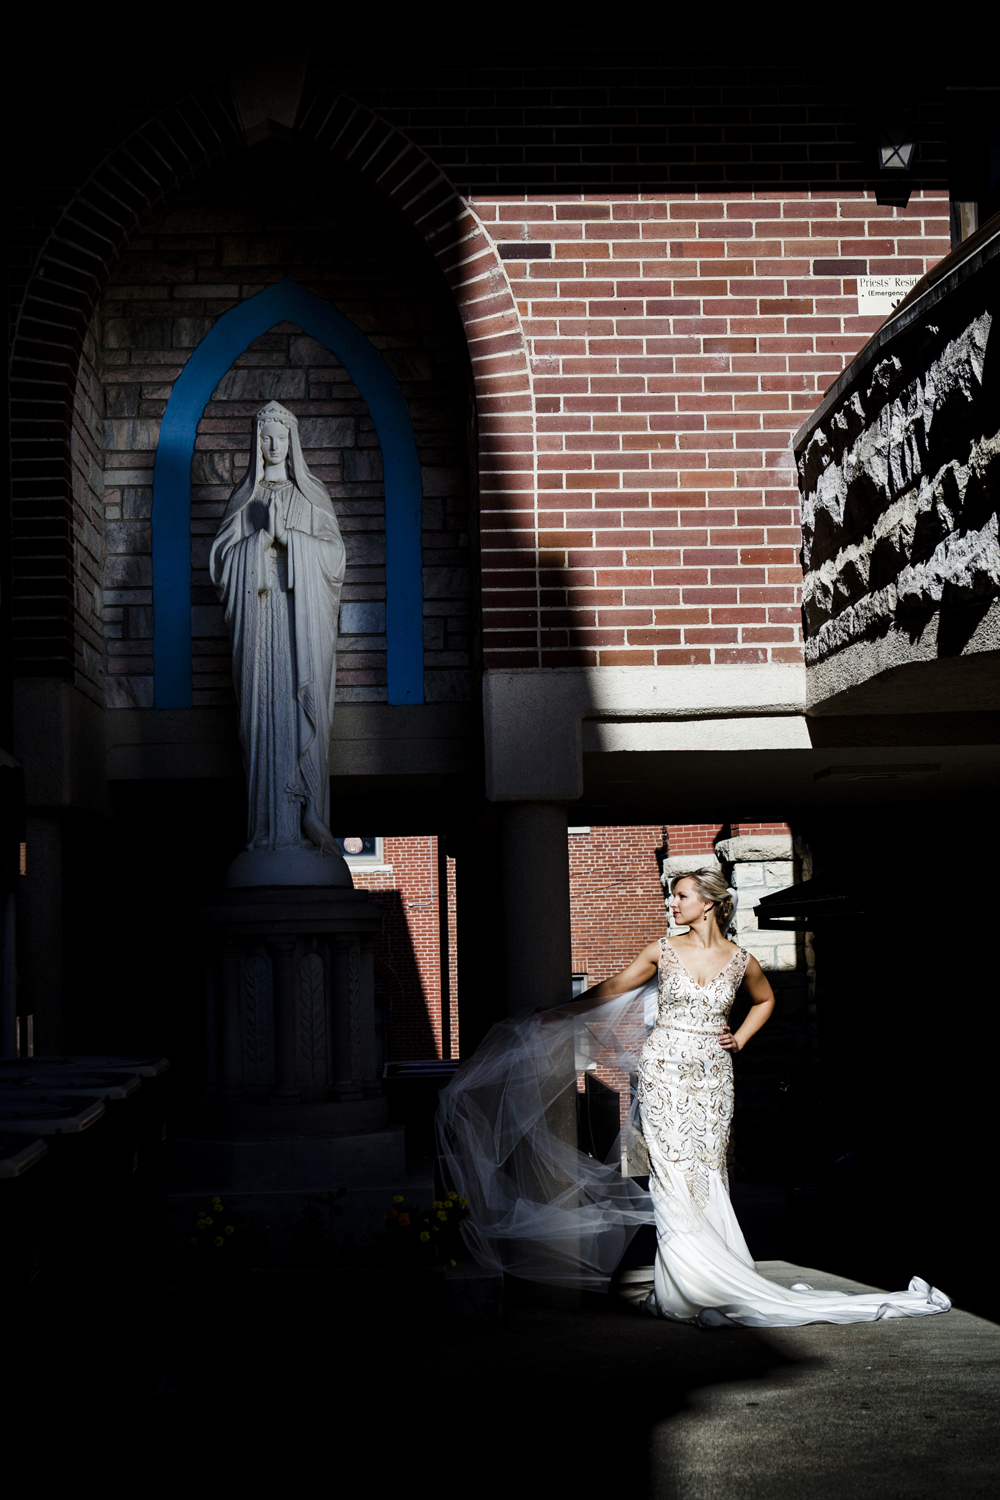 Janna - Jefferson City, MO - Katie set up & took this shot, I was on the walkway to the top right holding a reflector on the Mary statue.  I love the composition of Janna and Mary diagonal and the dark shadows and bright contrast.  We were running out of time when we took this one, about to head into the Church to start the ceremony.  Janna was a sport, willing to take the time to do whatever we thought would look good.